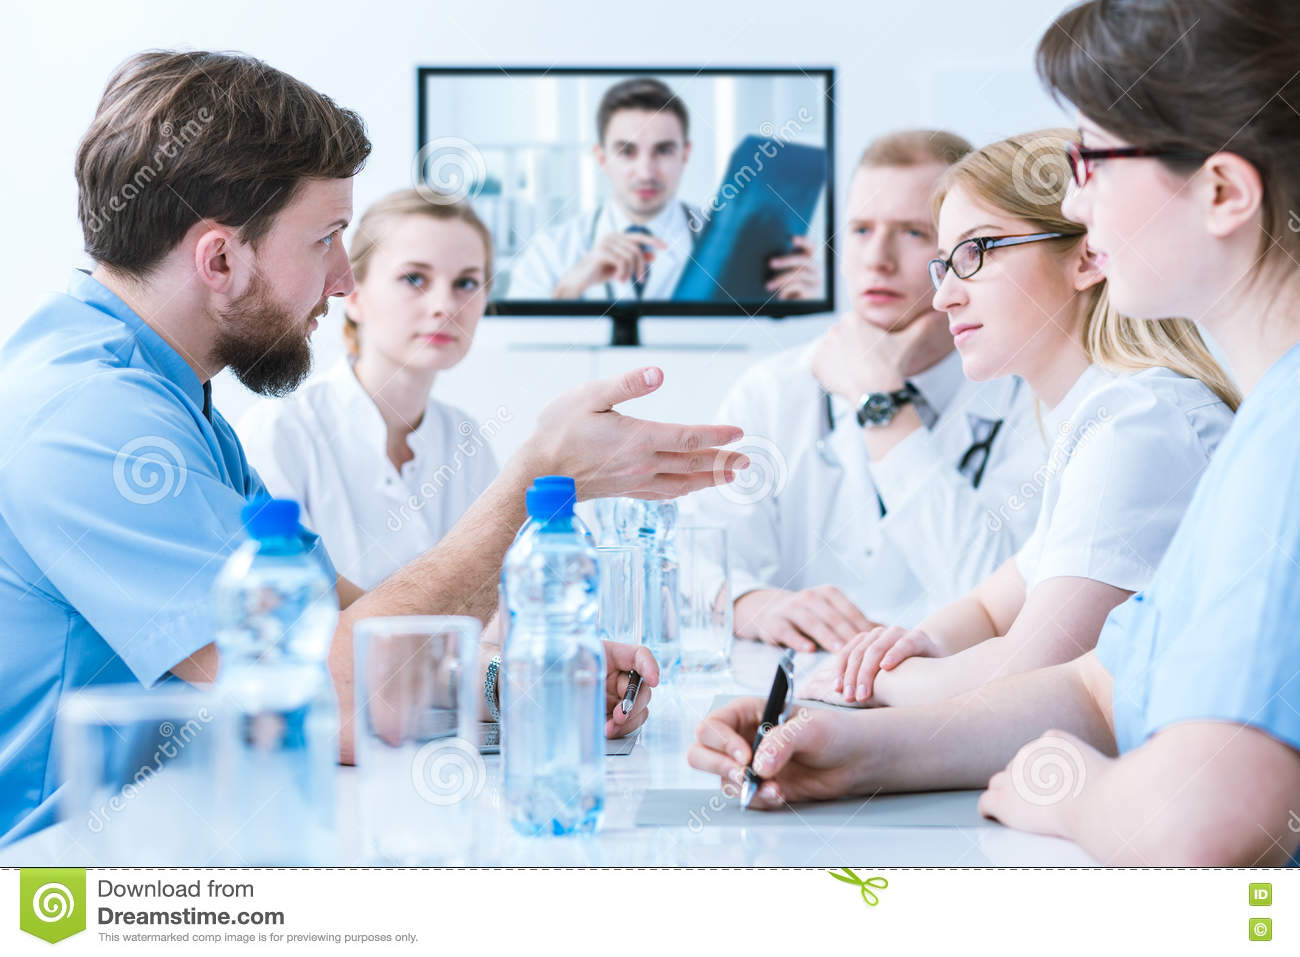 Doctors on medical consultation